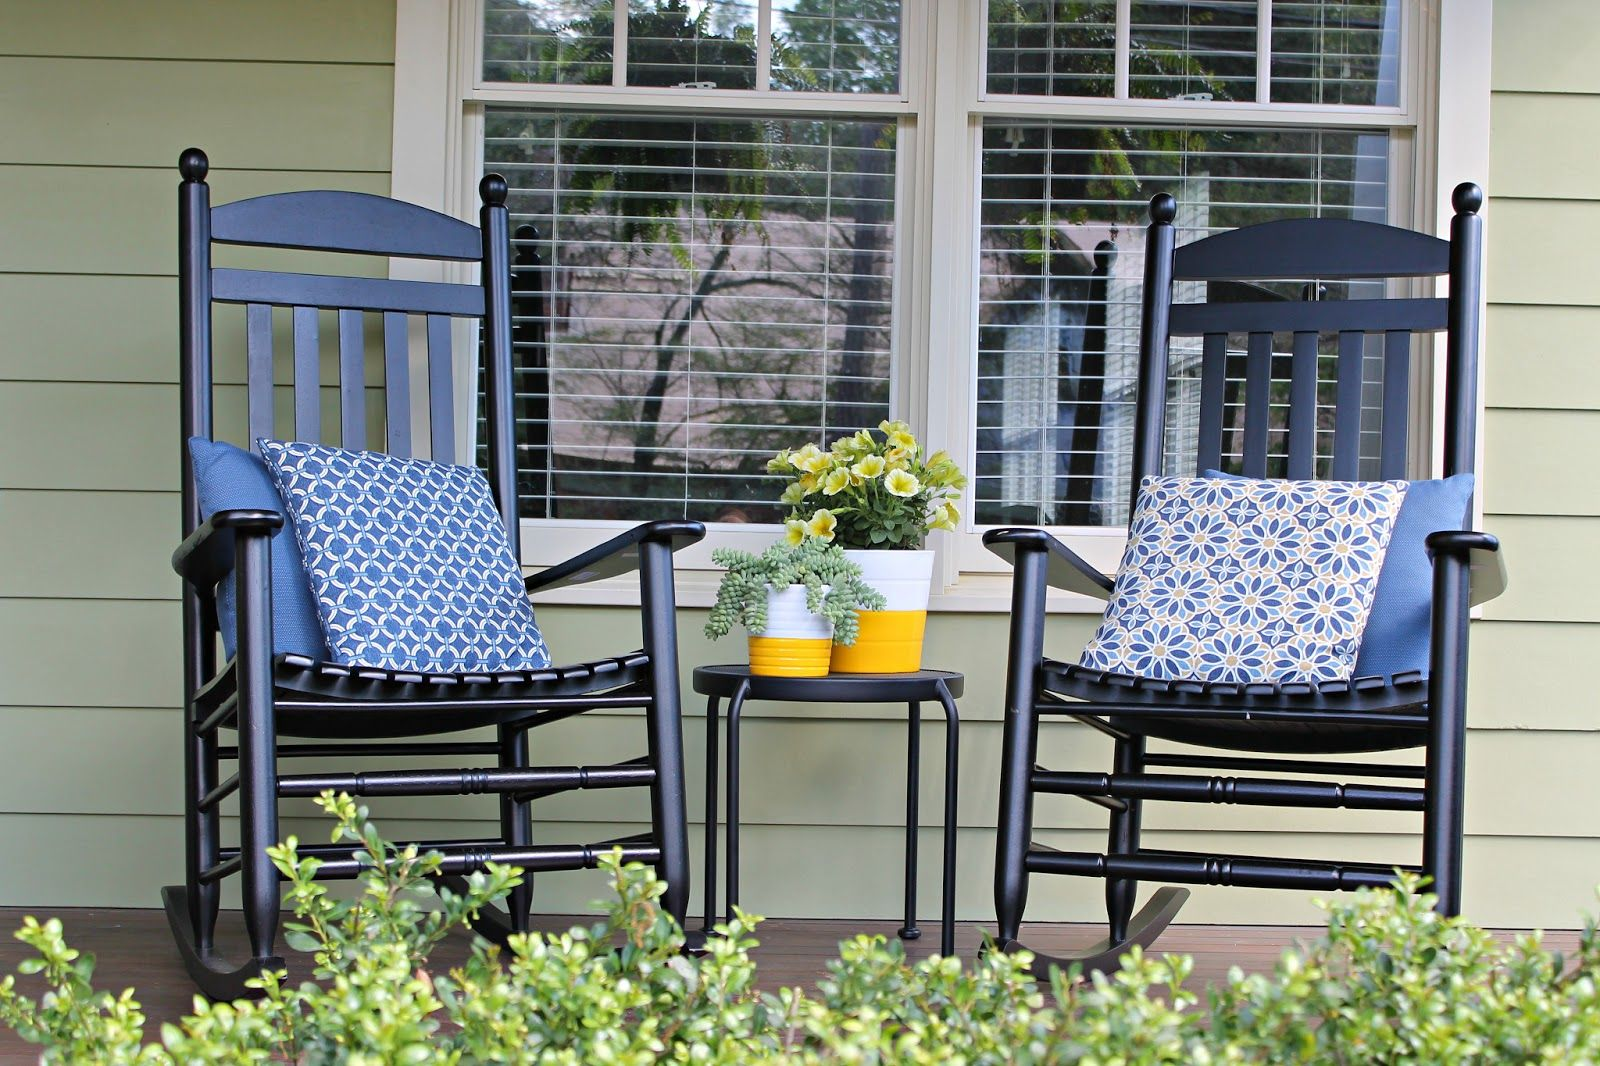 The Iconic Style Of The Rocking Chair Porch Table And Chairs Front Porch Chairs Rocking Chair Porch